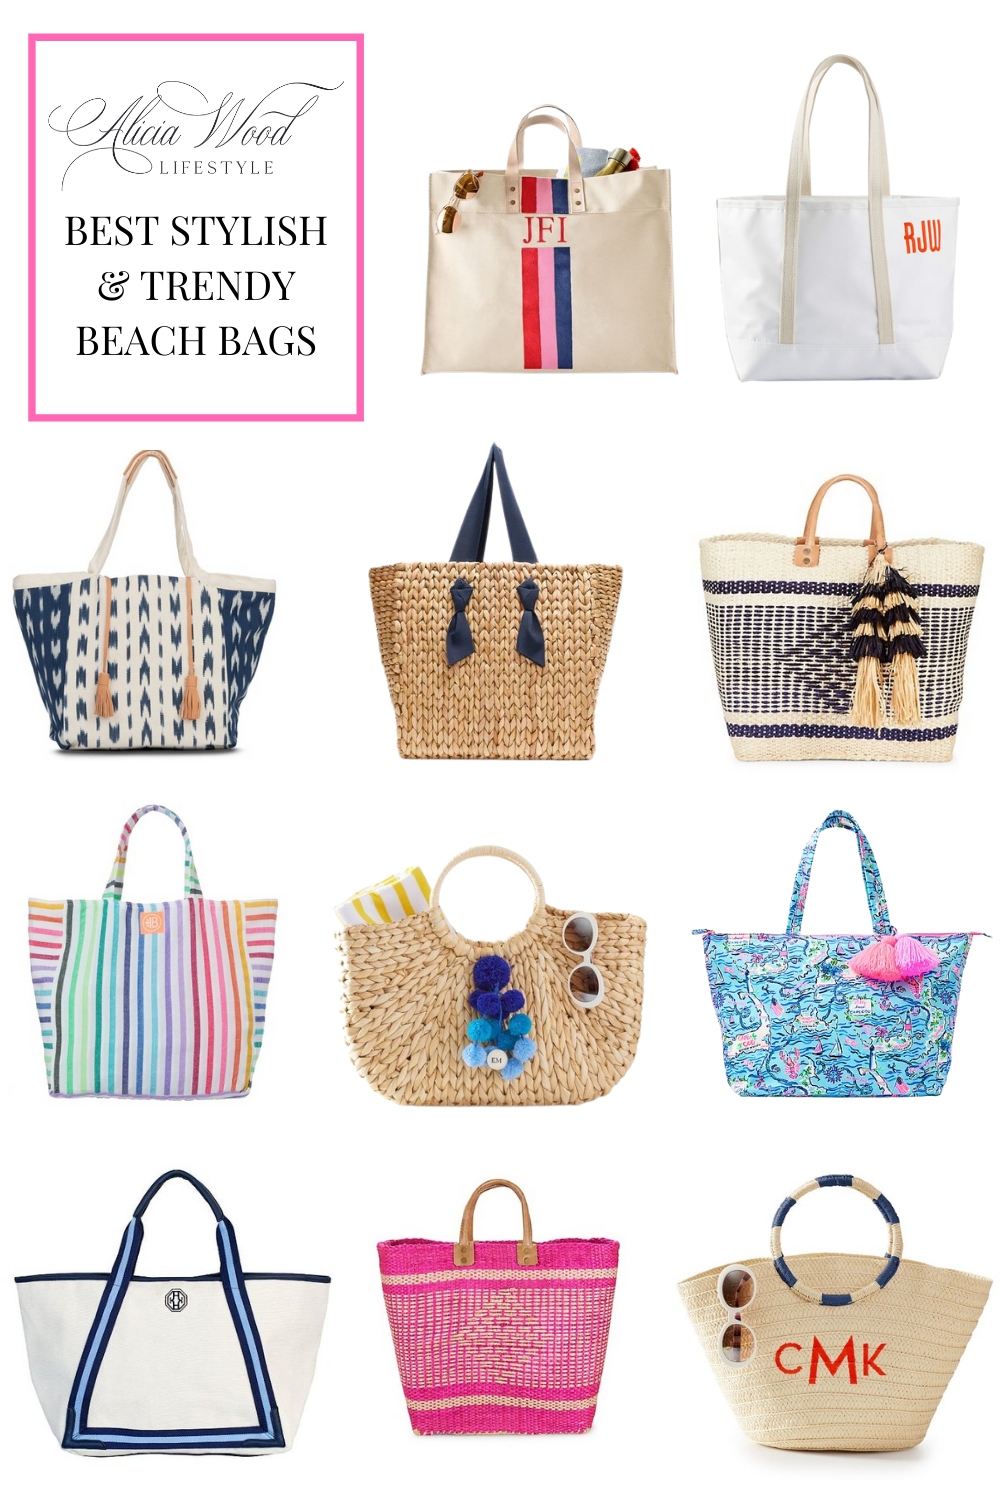 Best Stylish and Trendy Beach Bags